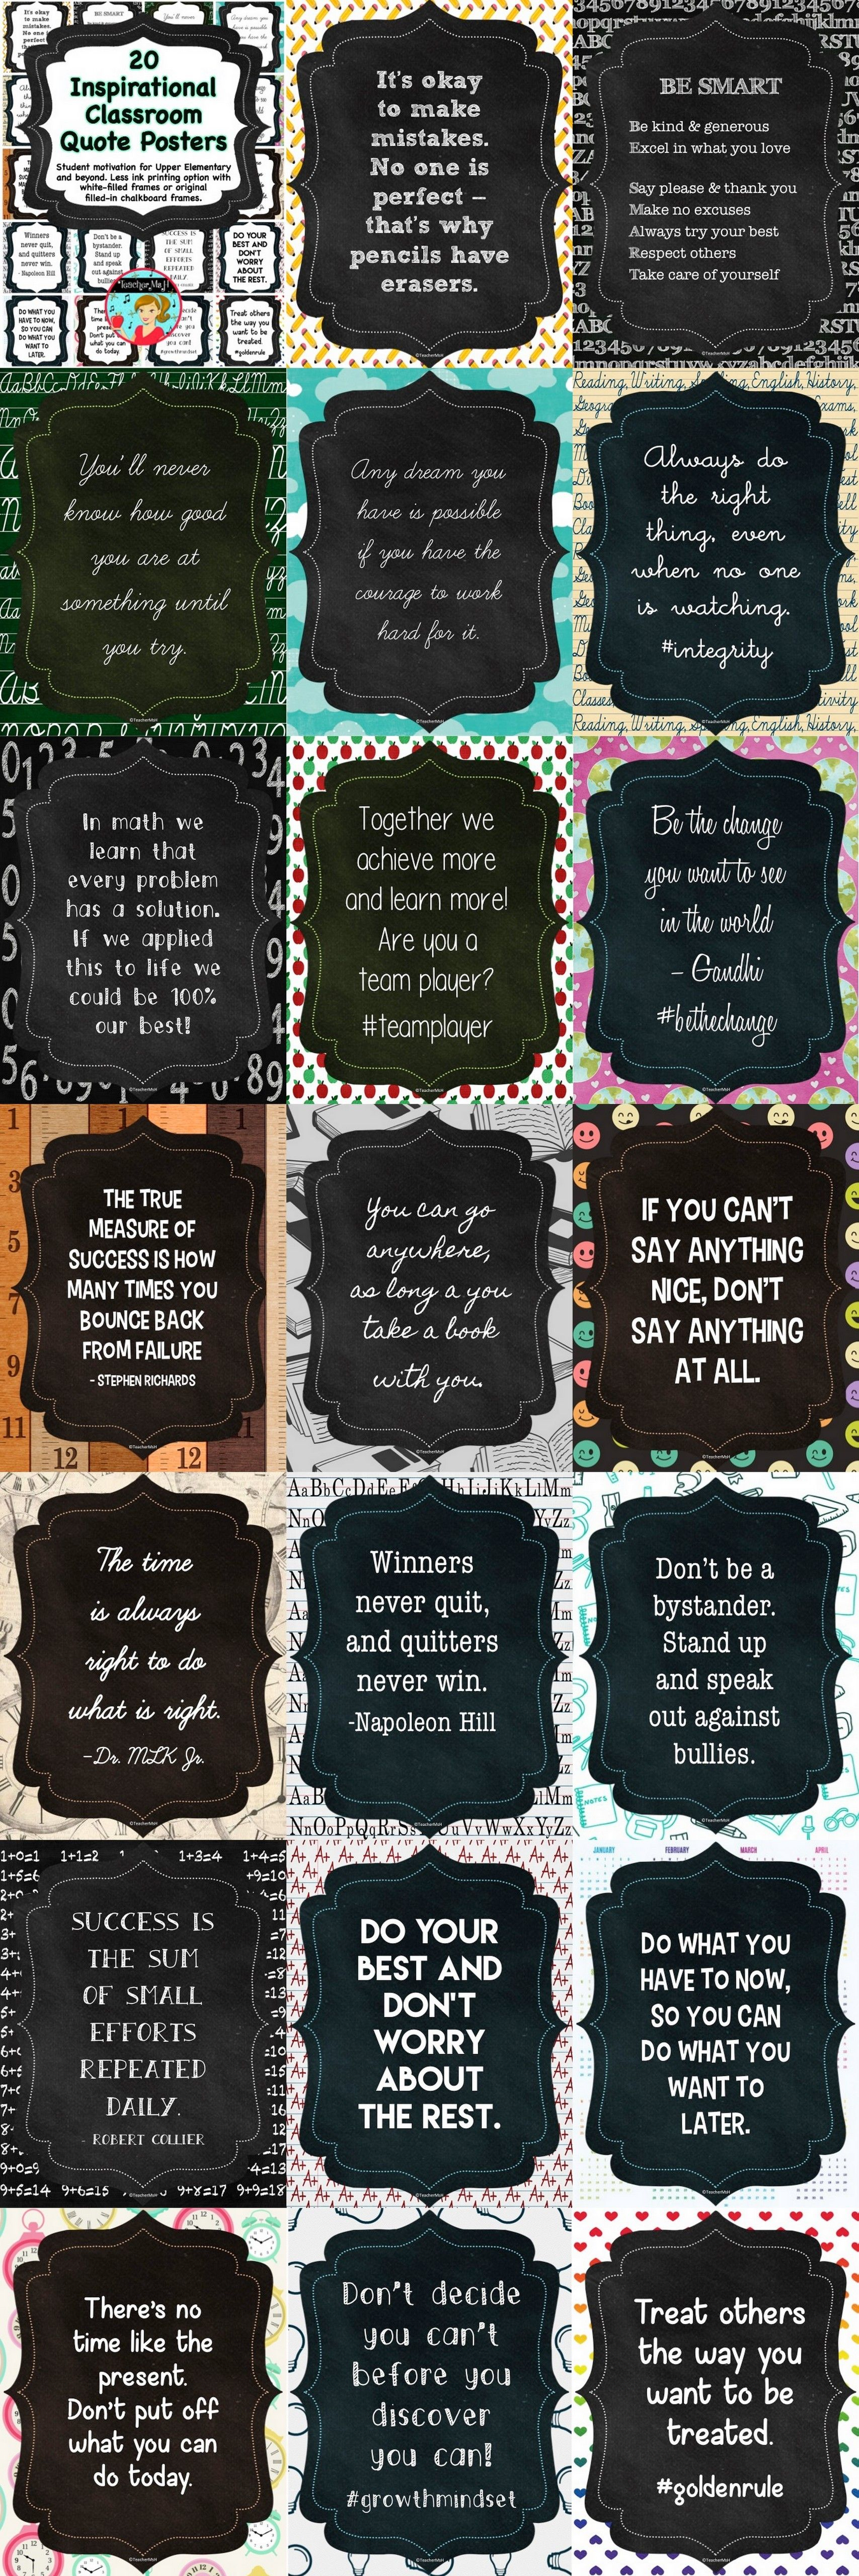 Modern Classroom Quotes ~ Inspirational classroom quotes printable posters